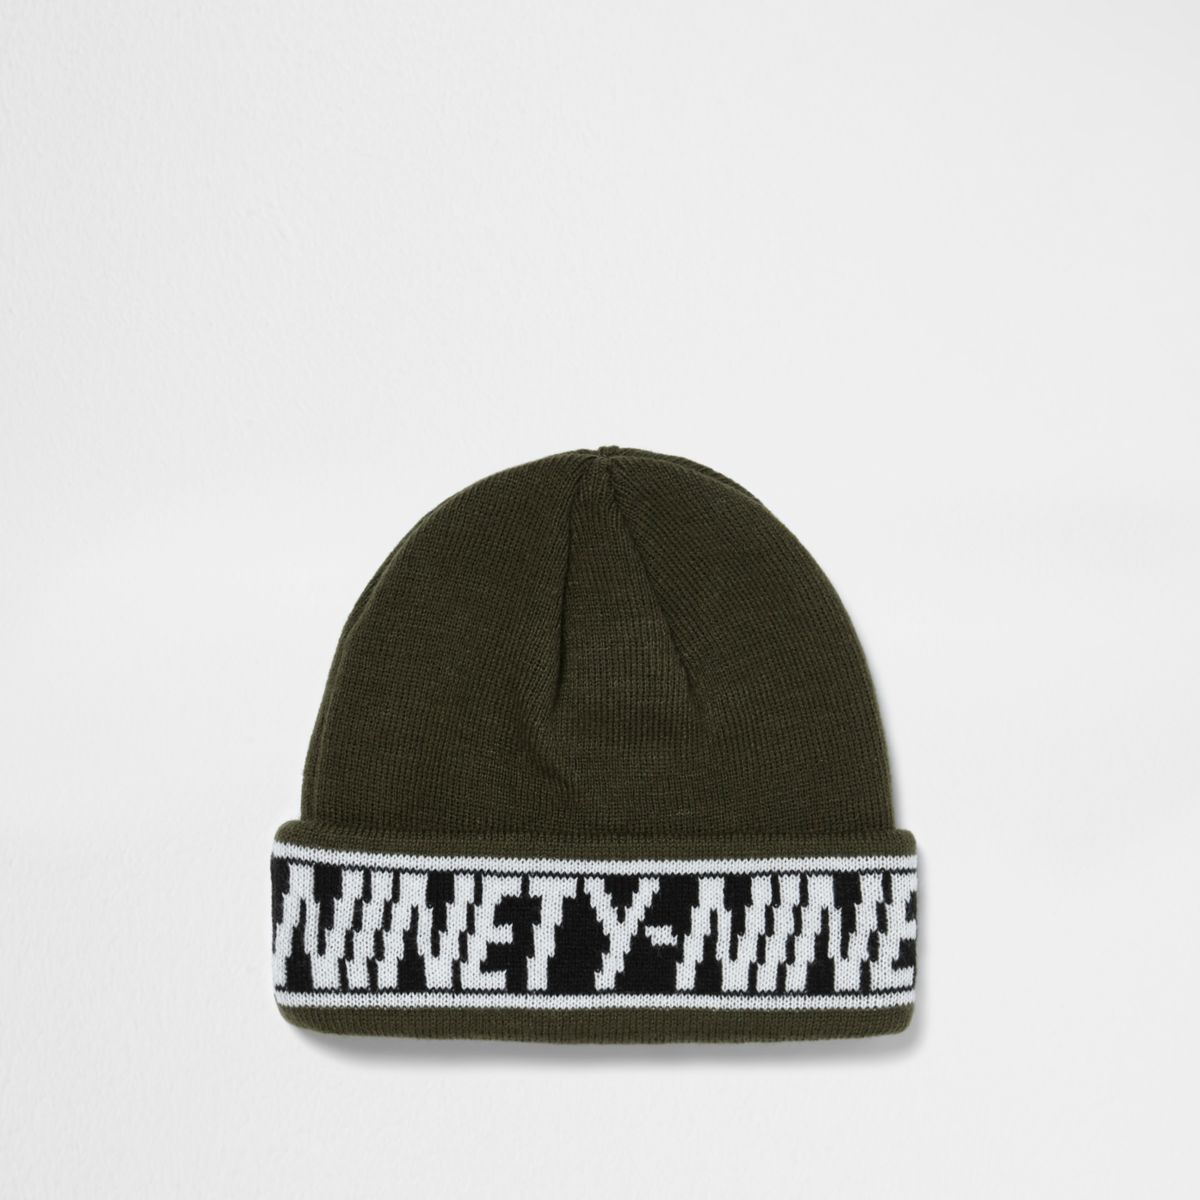 Khaki 'ninety nine' hem fisherman beanie hat